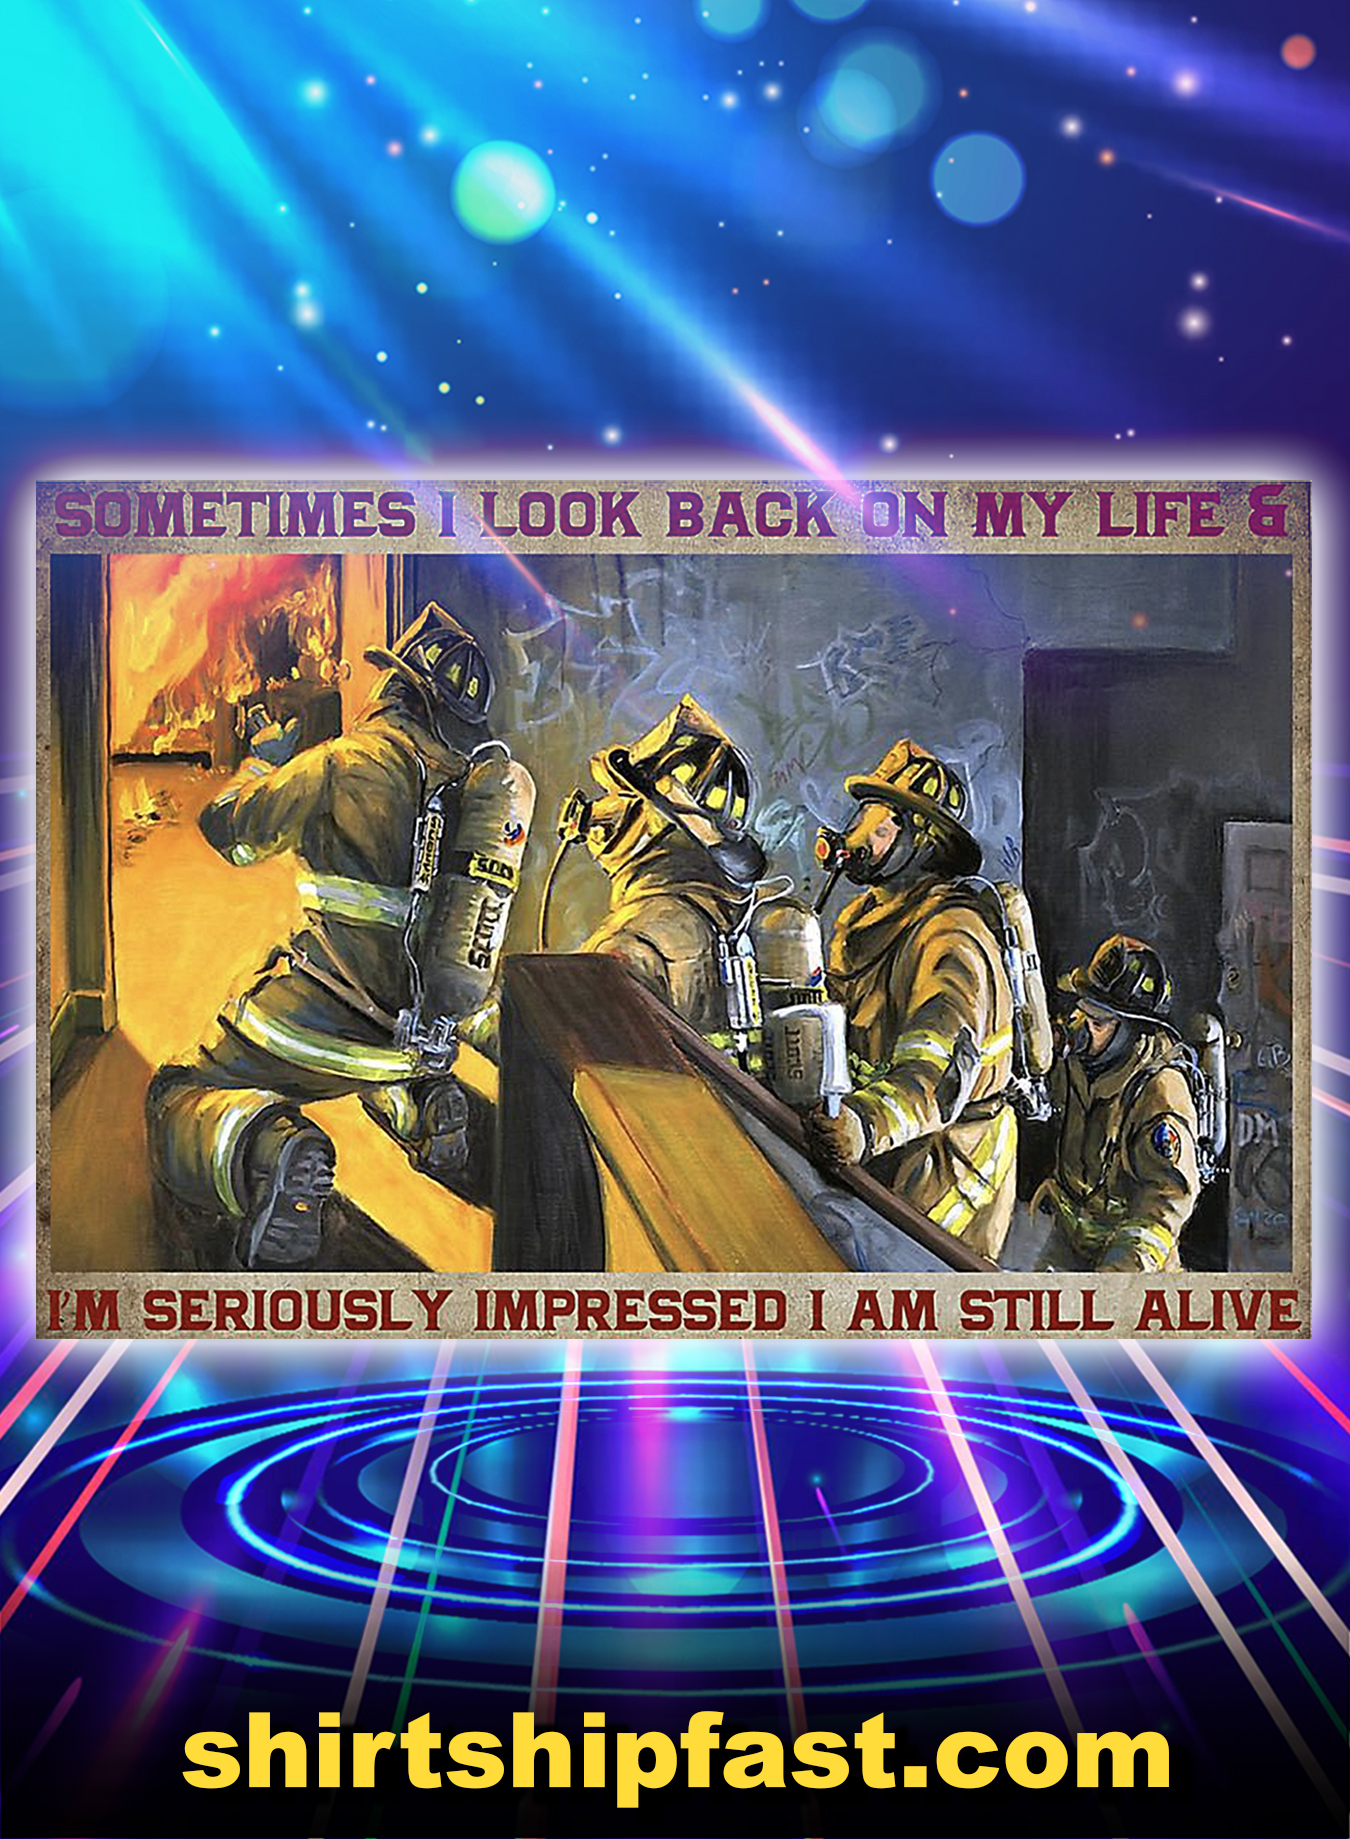 Firefighter sometimes i look back on my life poster - A2